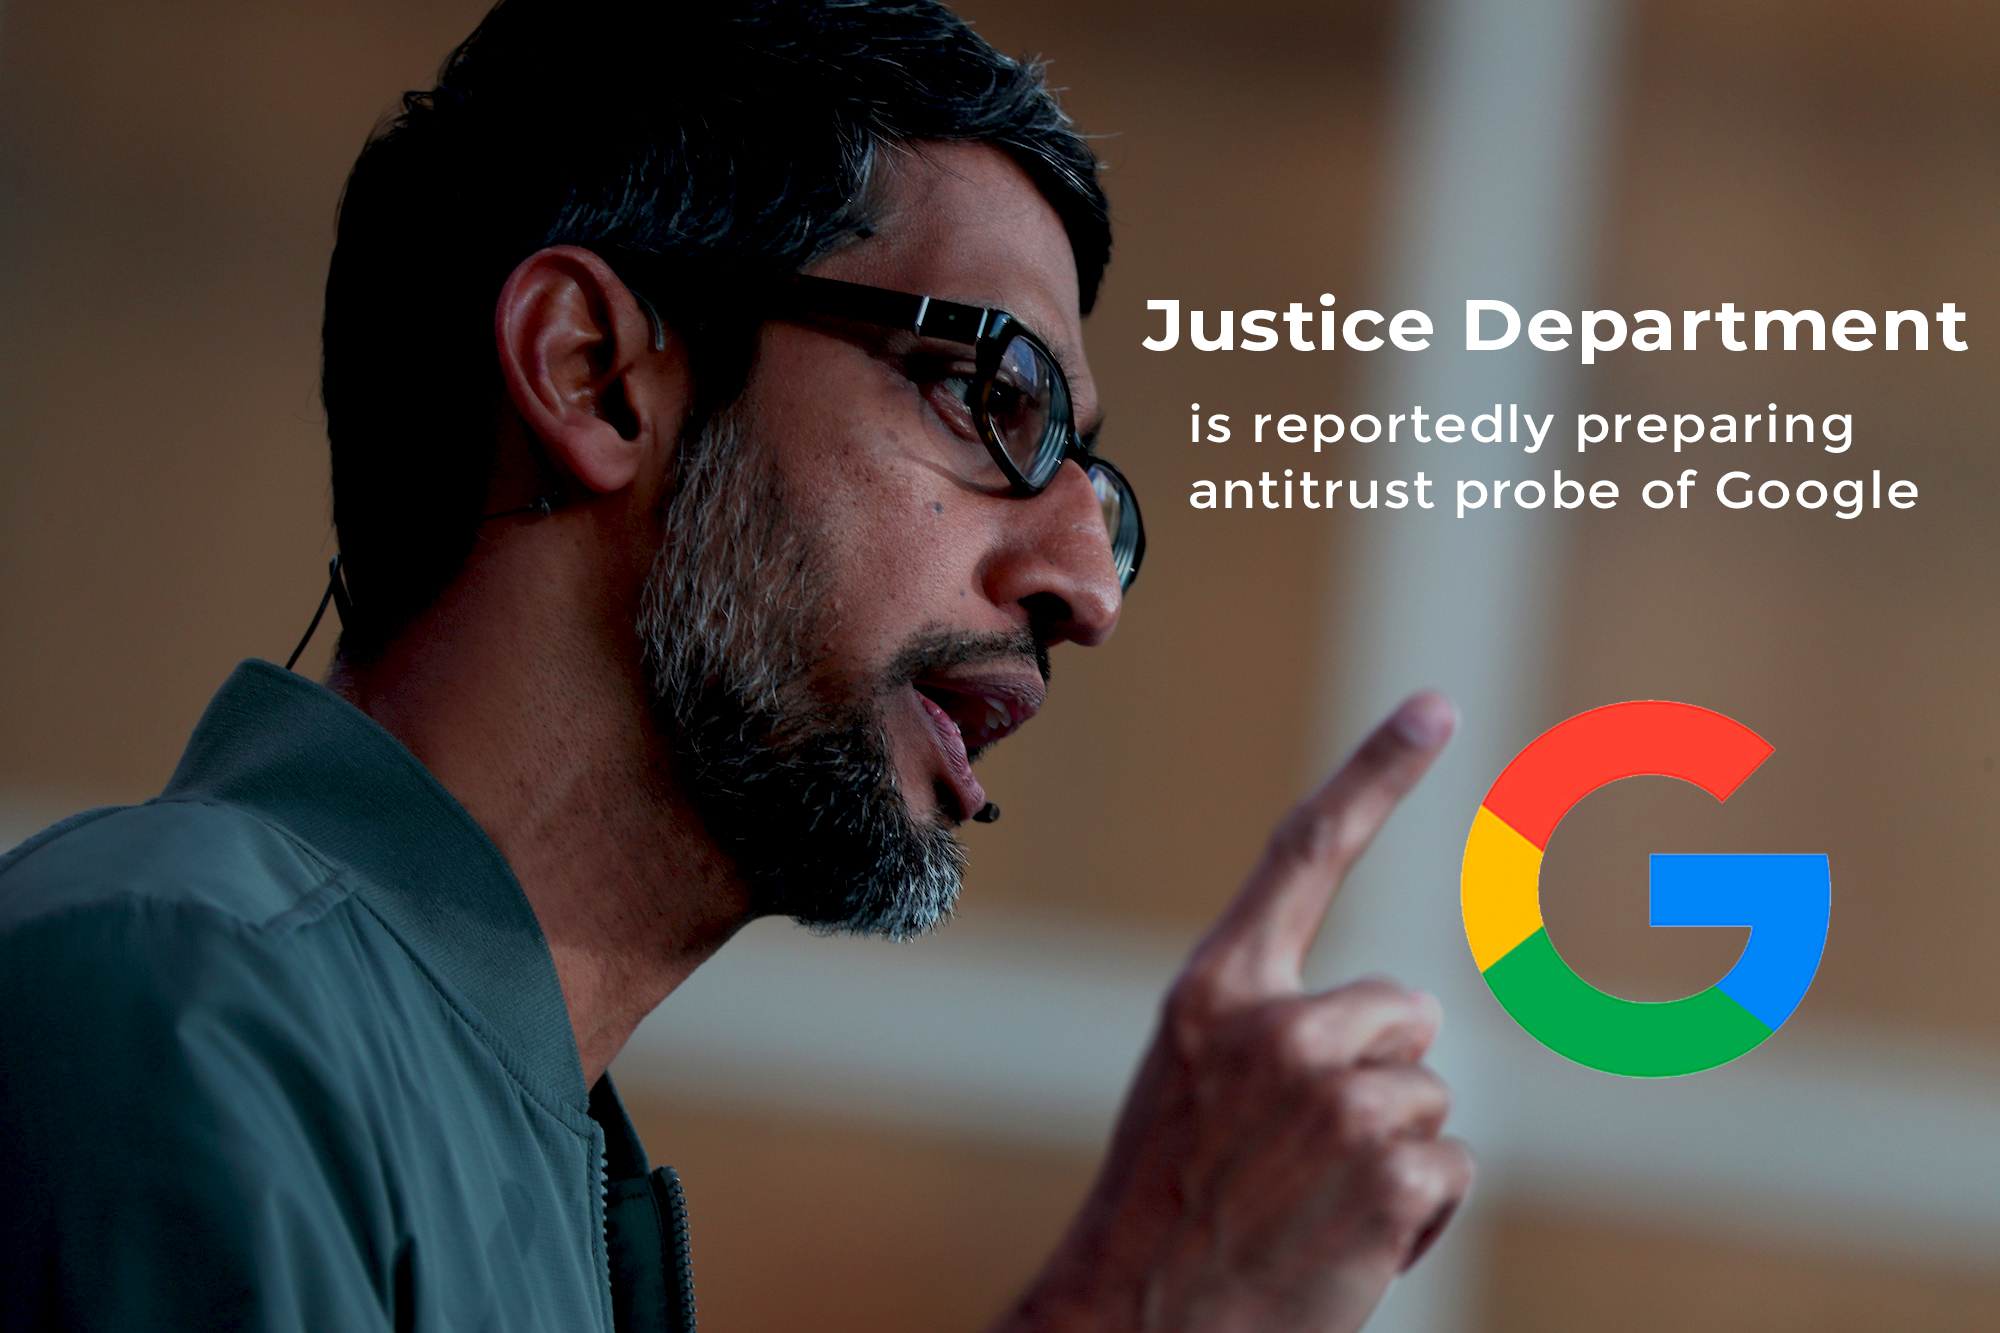 Justice Department of US is Preparing antitrust inquiry of Google